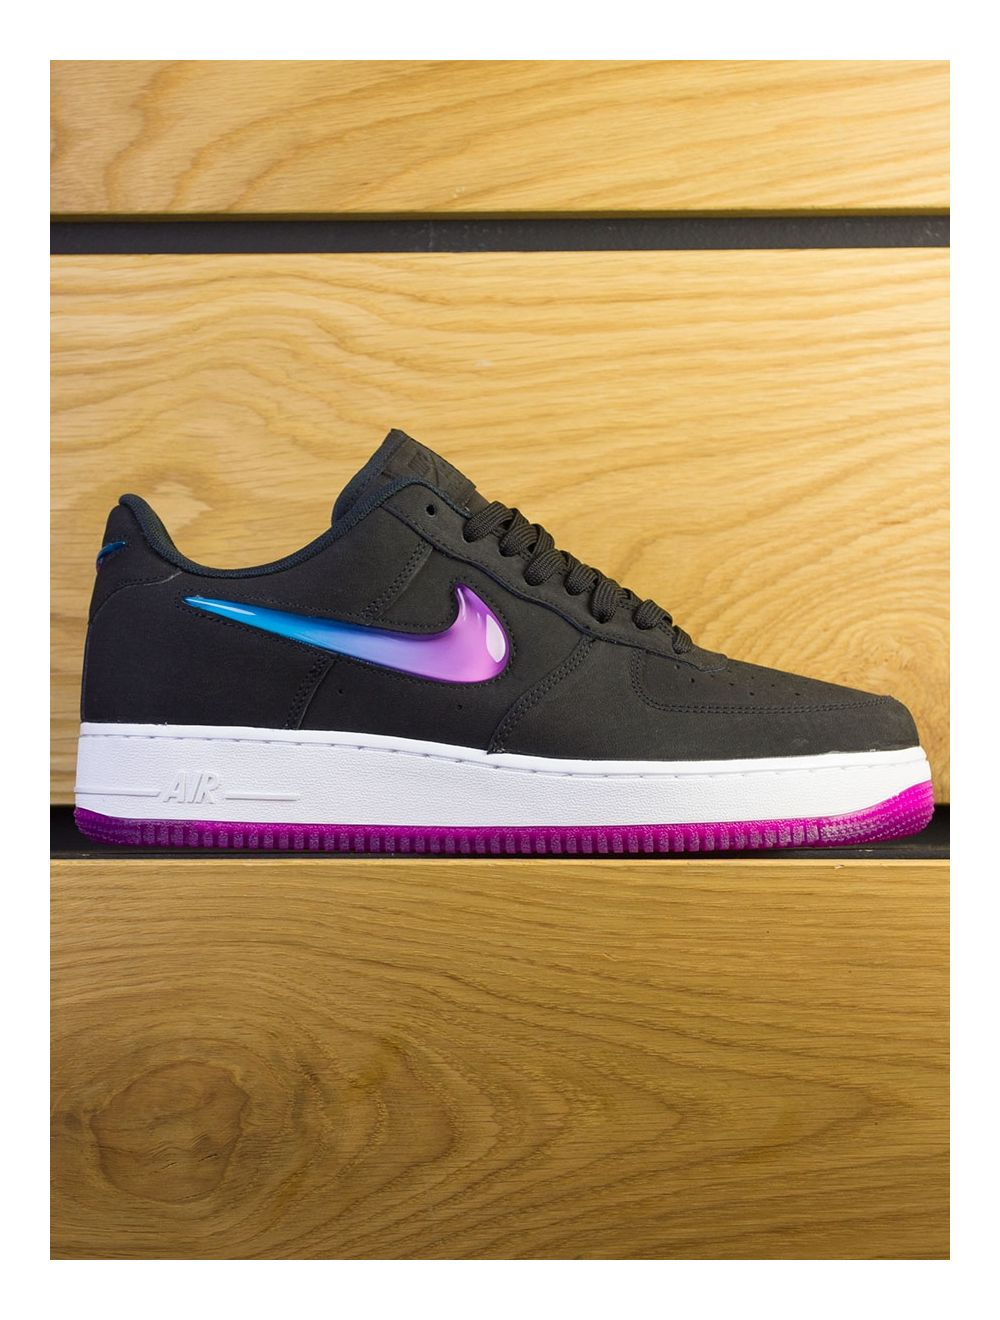 rencontrer 7afa0 db048 Nike Air Force 1 '07 Premium - Black Active Fuschia